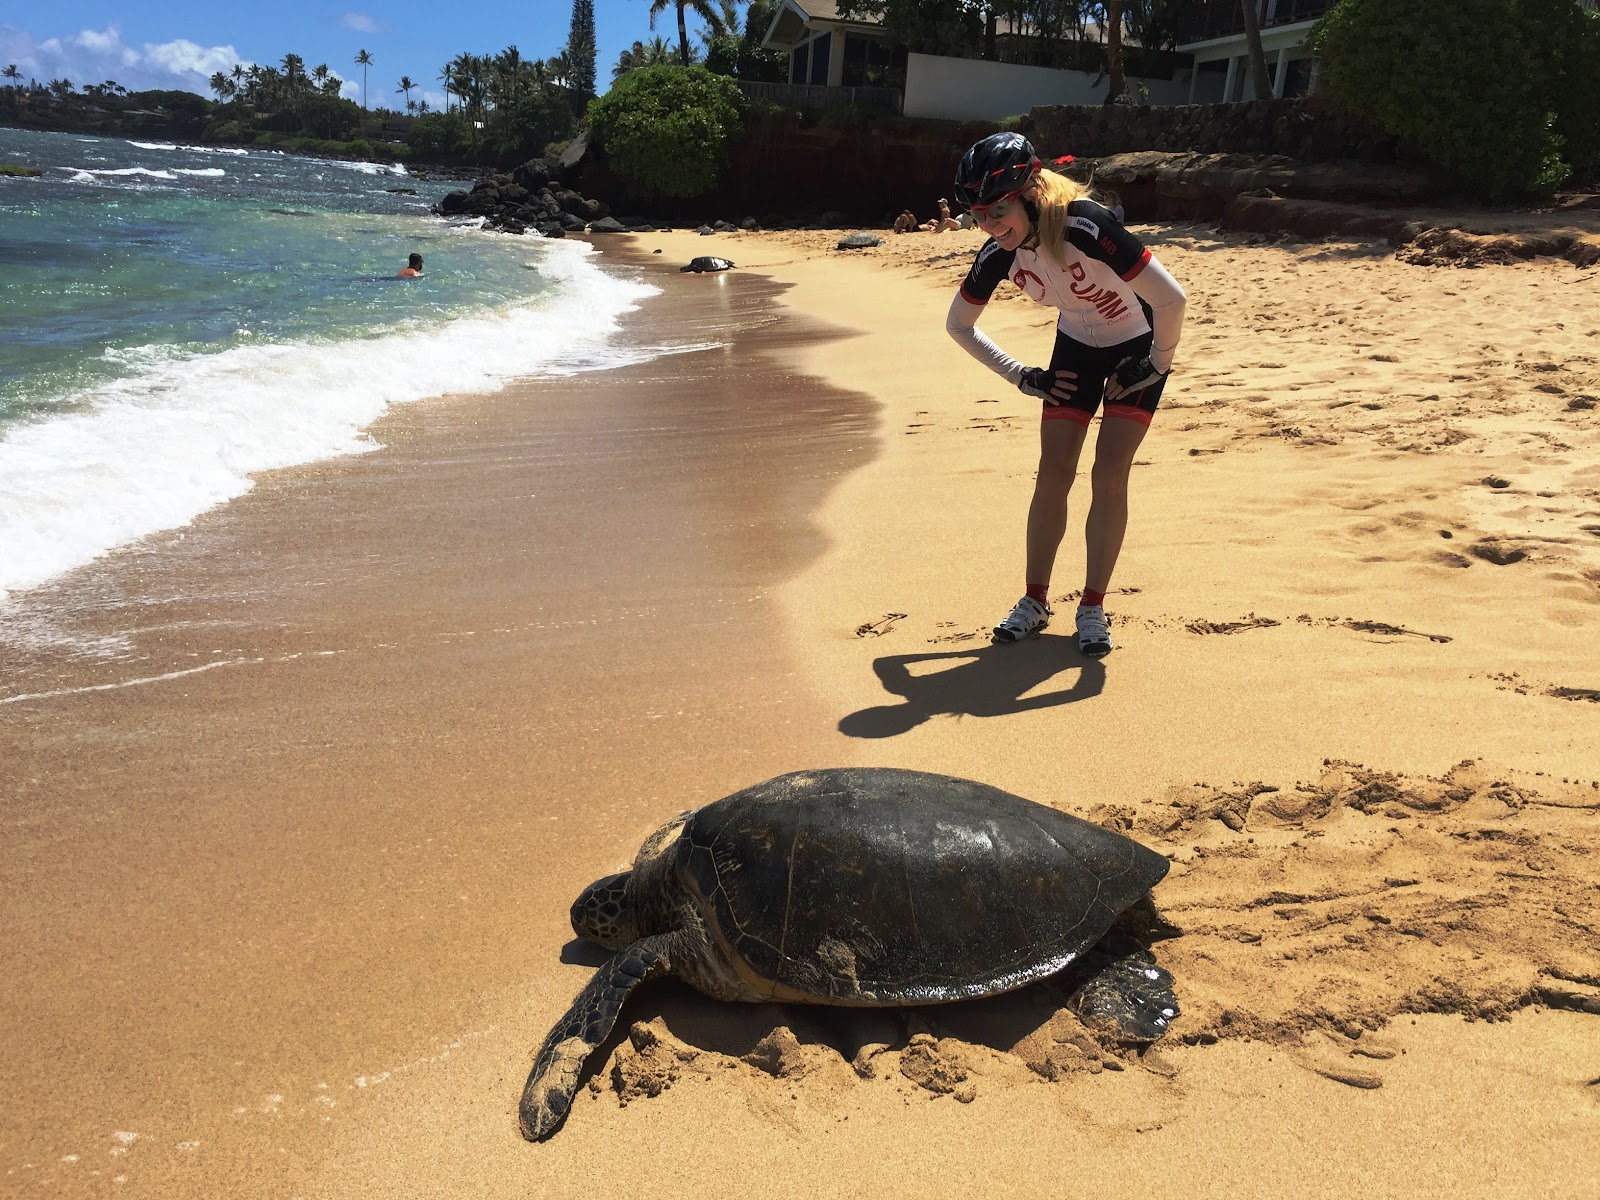 Start of Haleakala cycling climb from Paia at the beach with sea turtle.